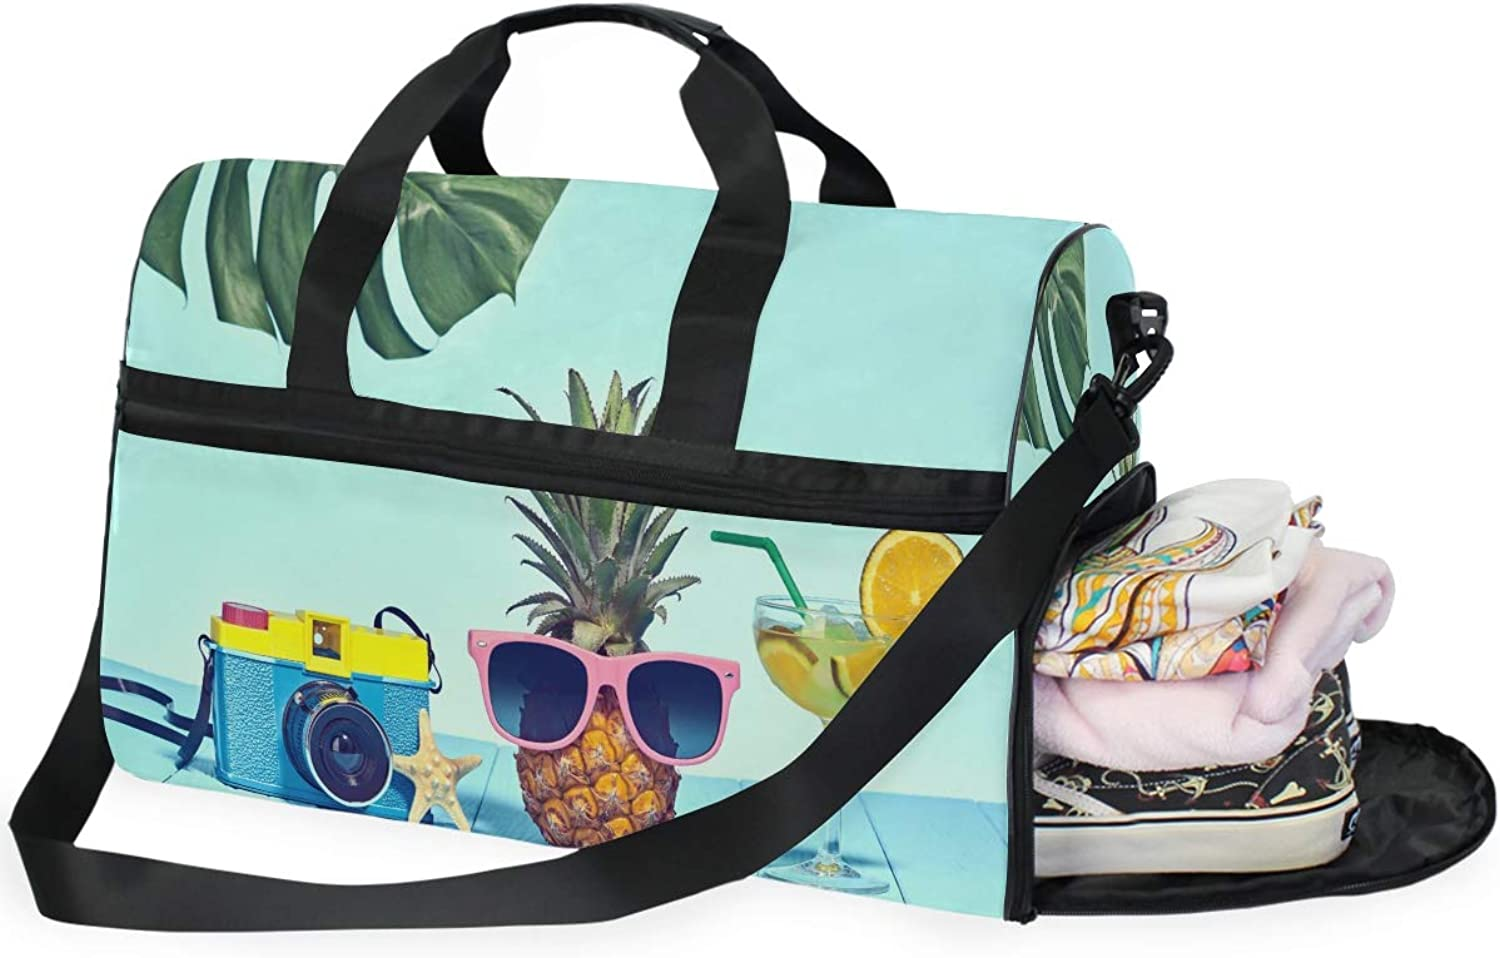 34e8ceaeea91 Hipster Pineapple Sports Gym Bag with shoes Compartment Duffel Bag ...